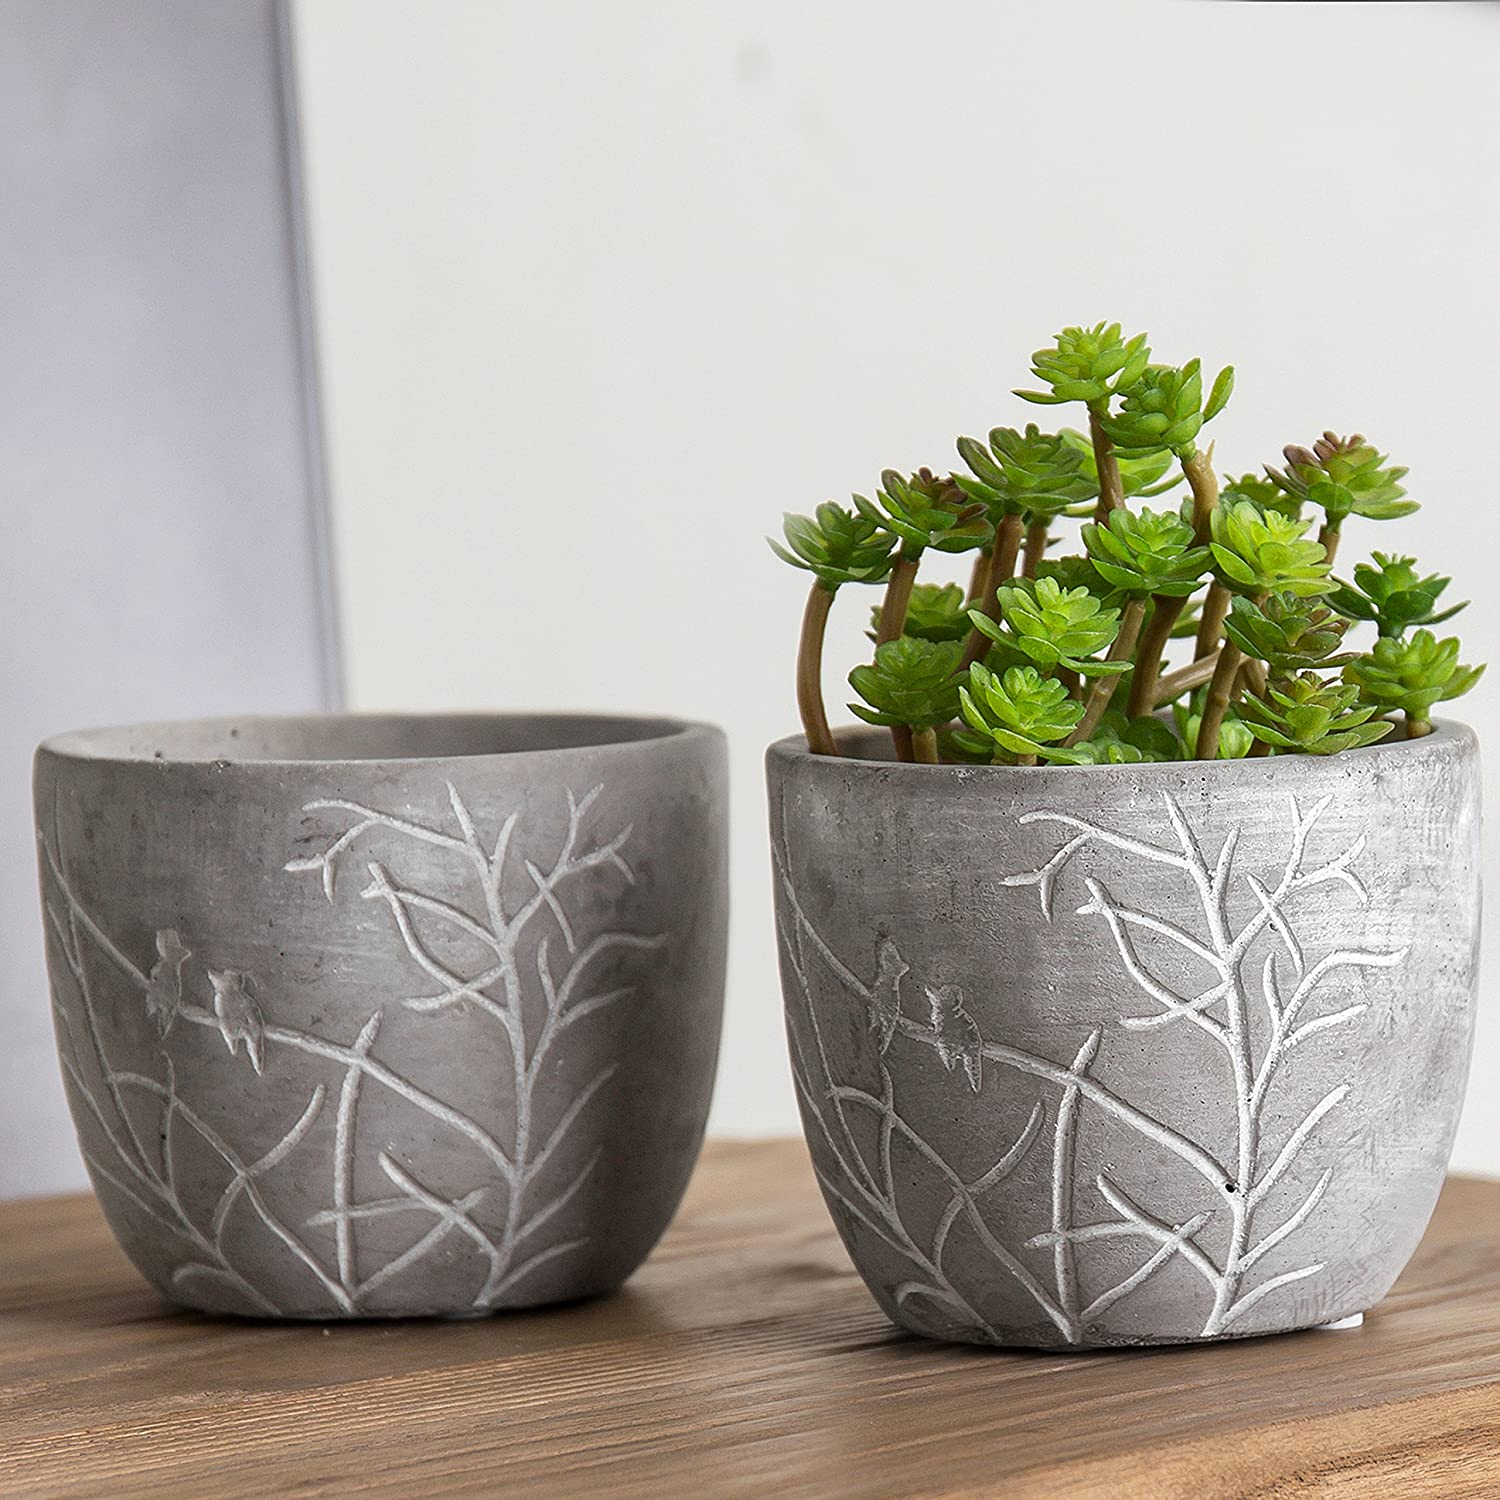 MyGift 4-Inch Bird Branches Etched Clay Flower Pot, Small Succulent Planter